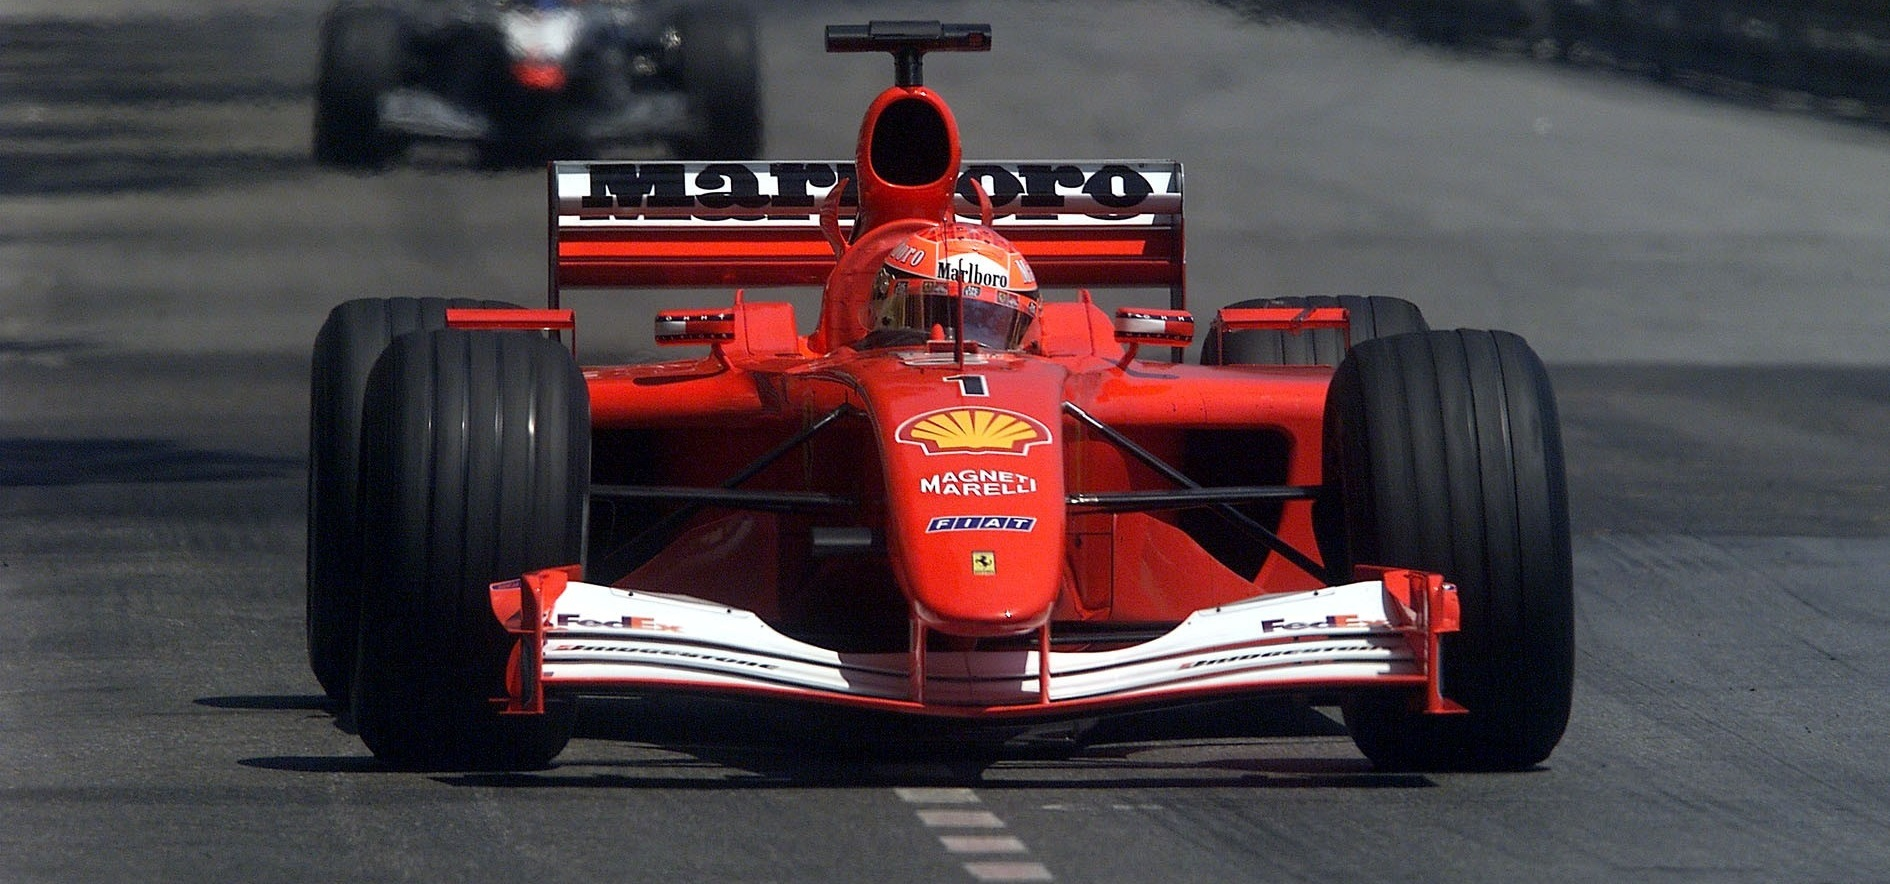 Michael Schumacher GP Mónaco 2001